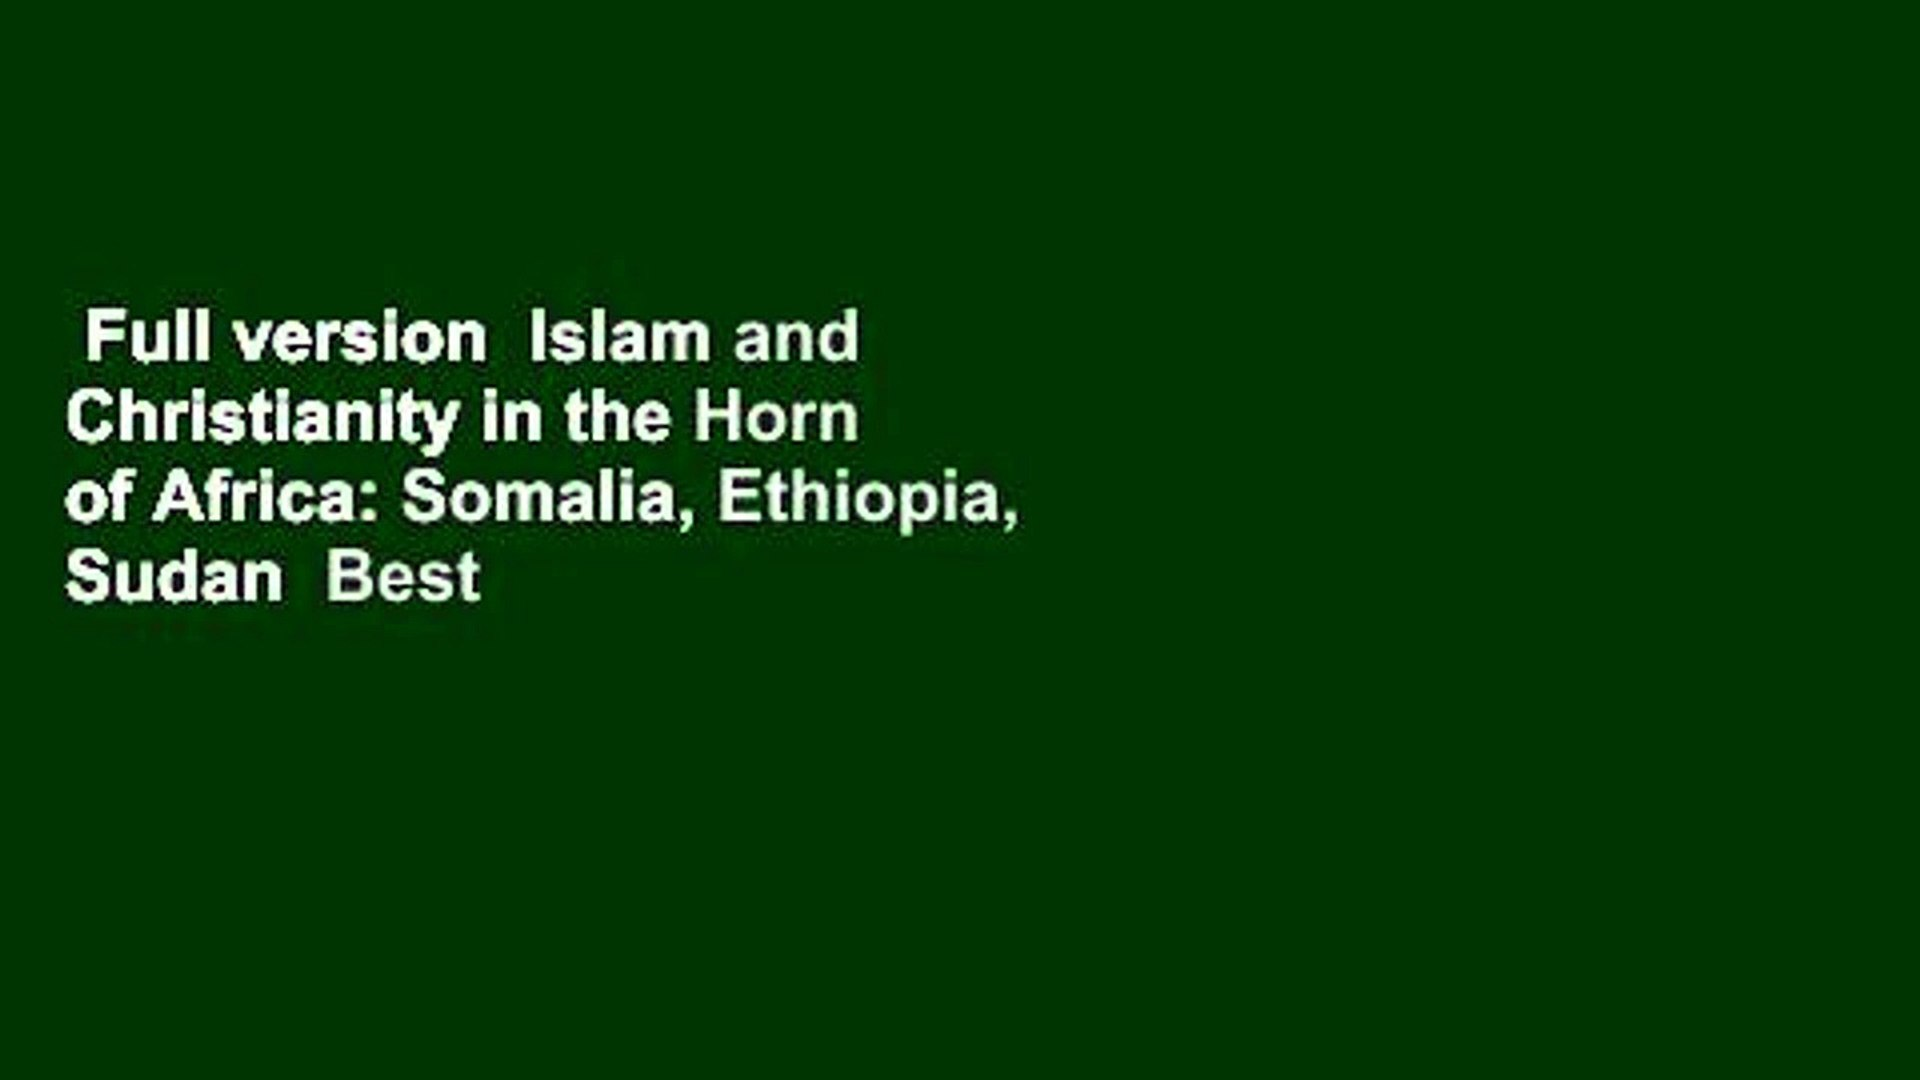 Full version Islam and Christianity in the Horn of Africa: Somalia,  Ethiopia, Sudan Best